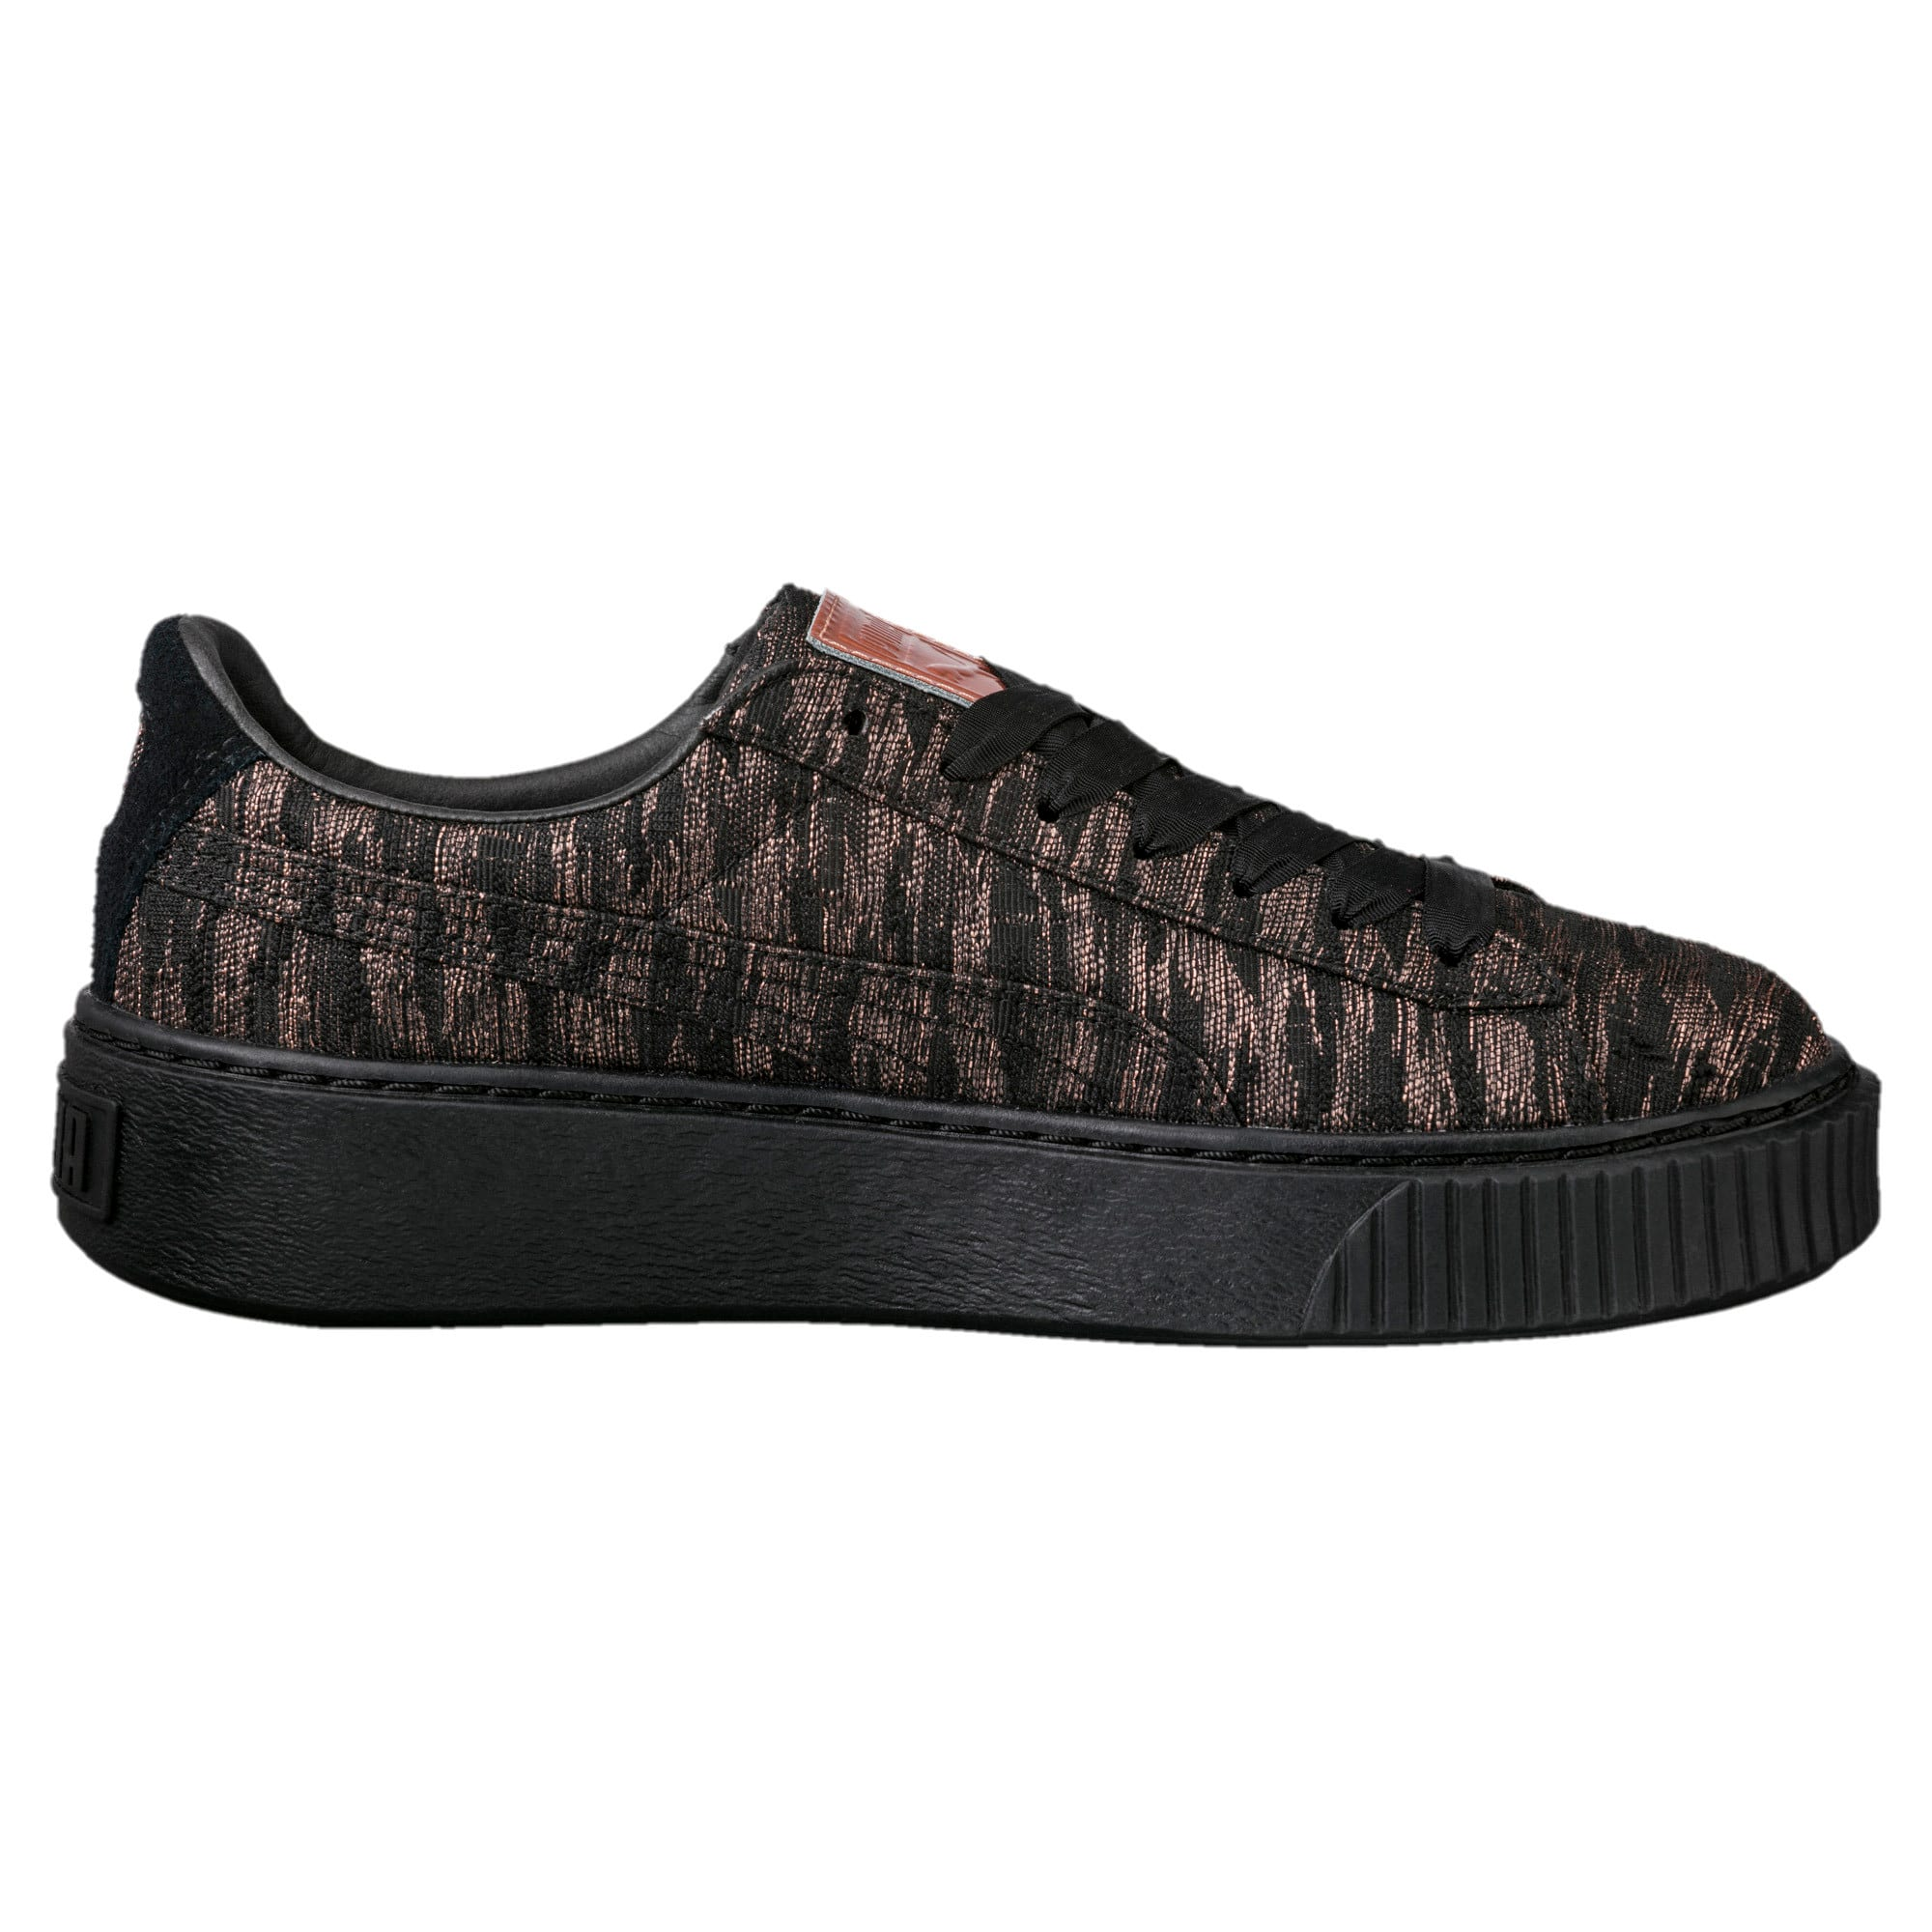 Thumbnail 4 of Basket Platform Velvet Rope Women's Trainers, Puma Black-Puma Black, medium-IND